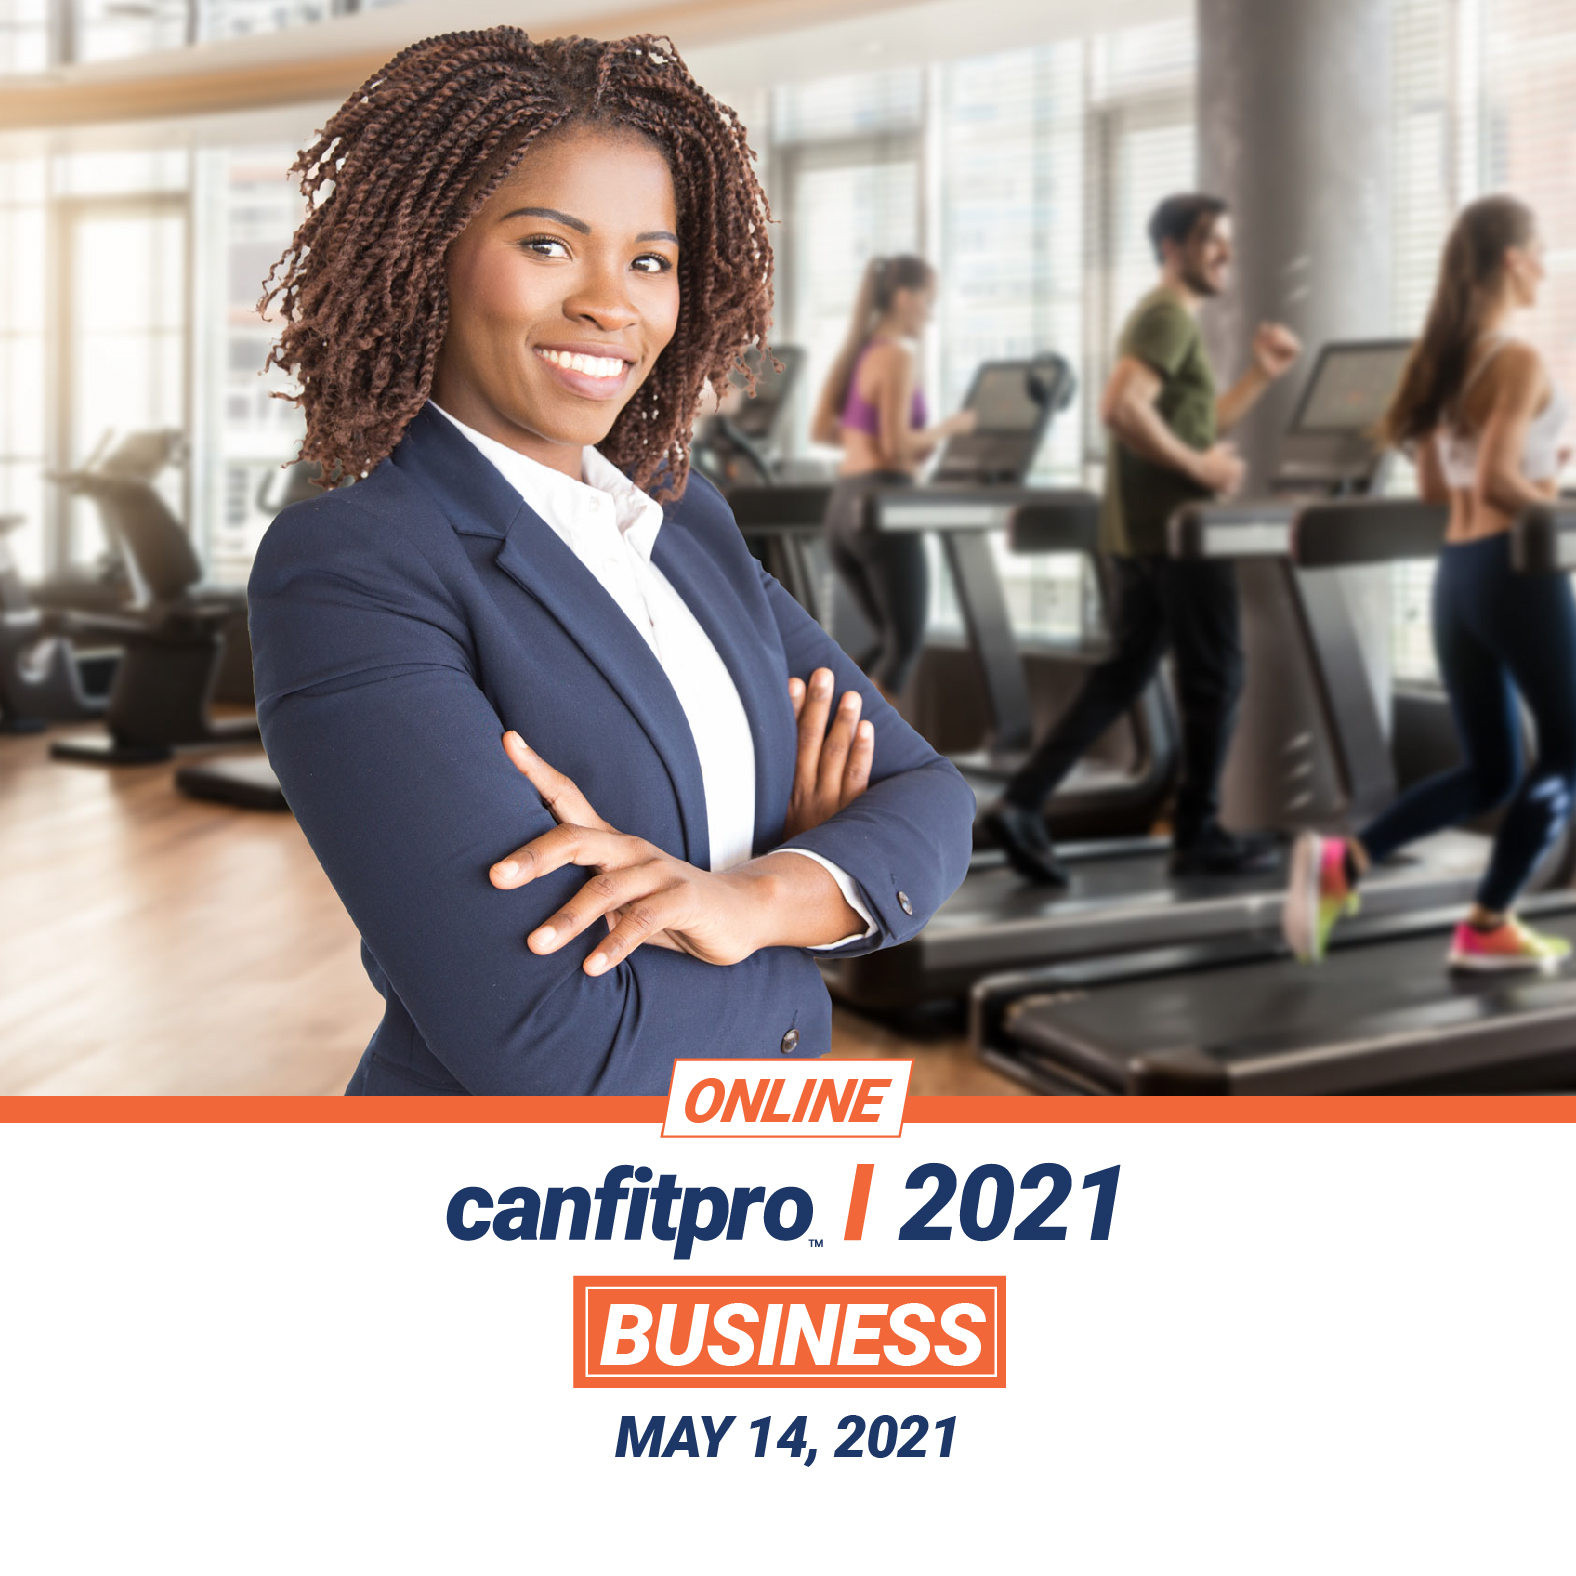 canfitpro events 2021 | Business